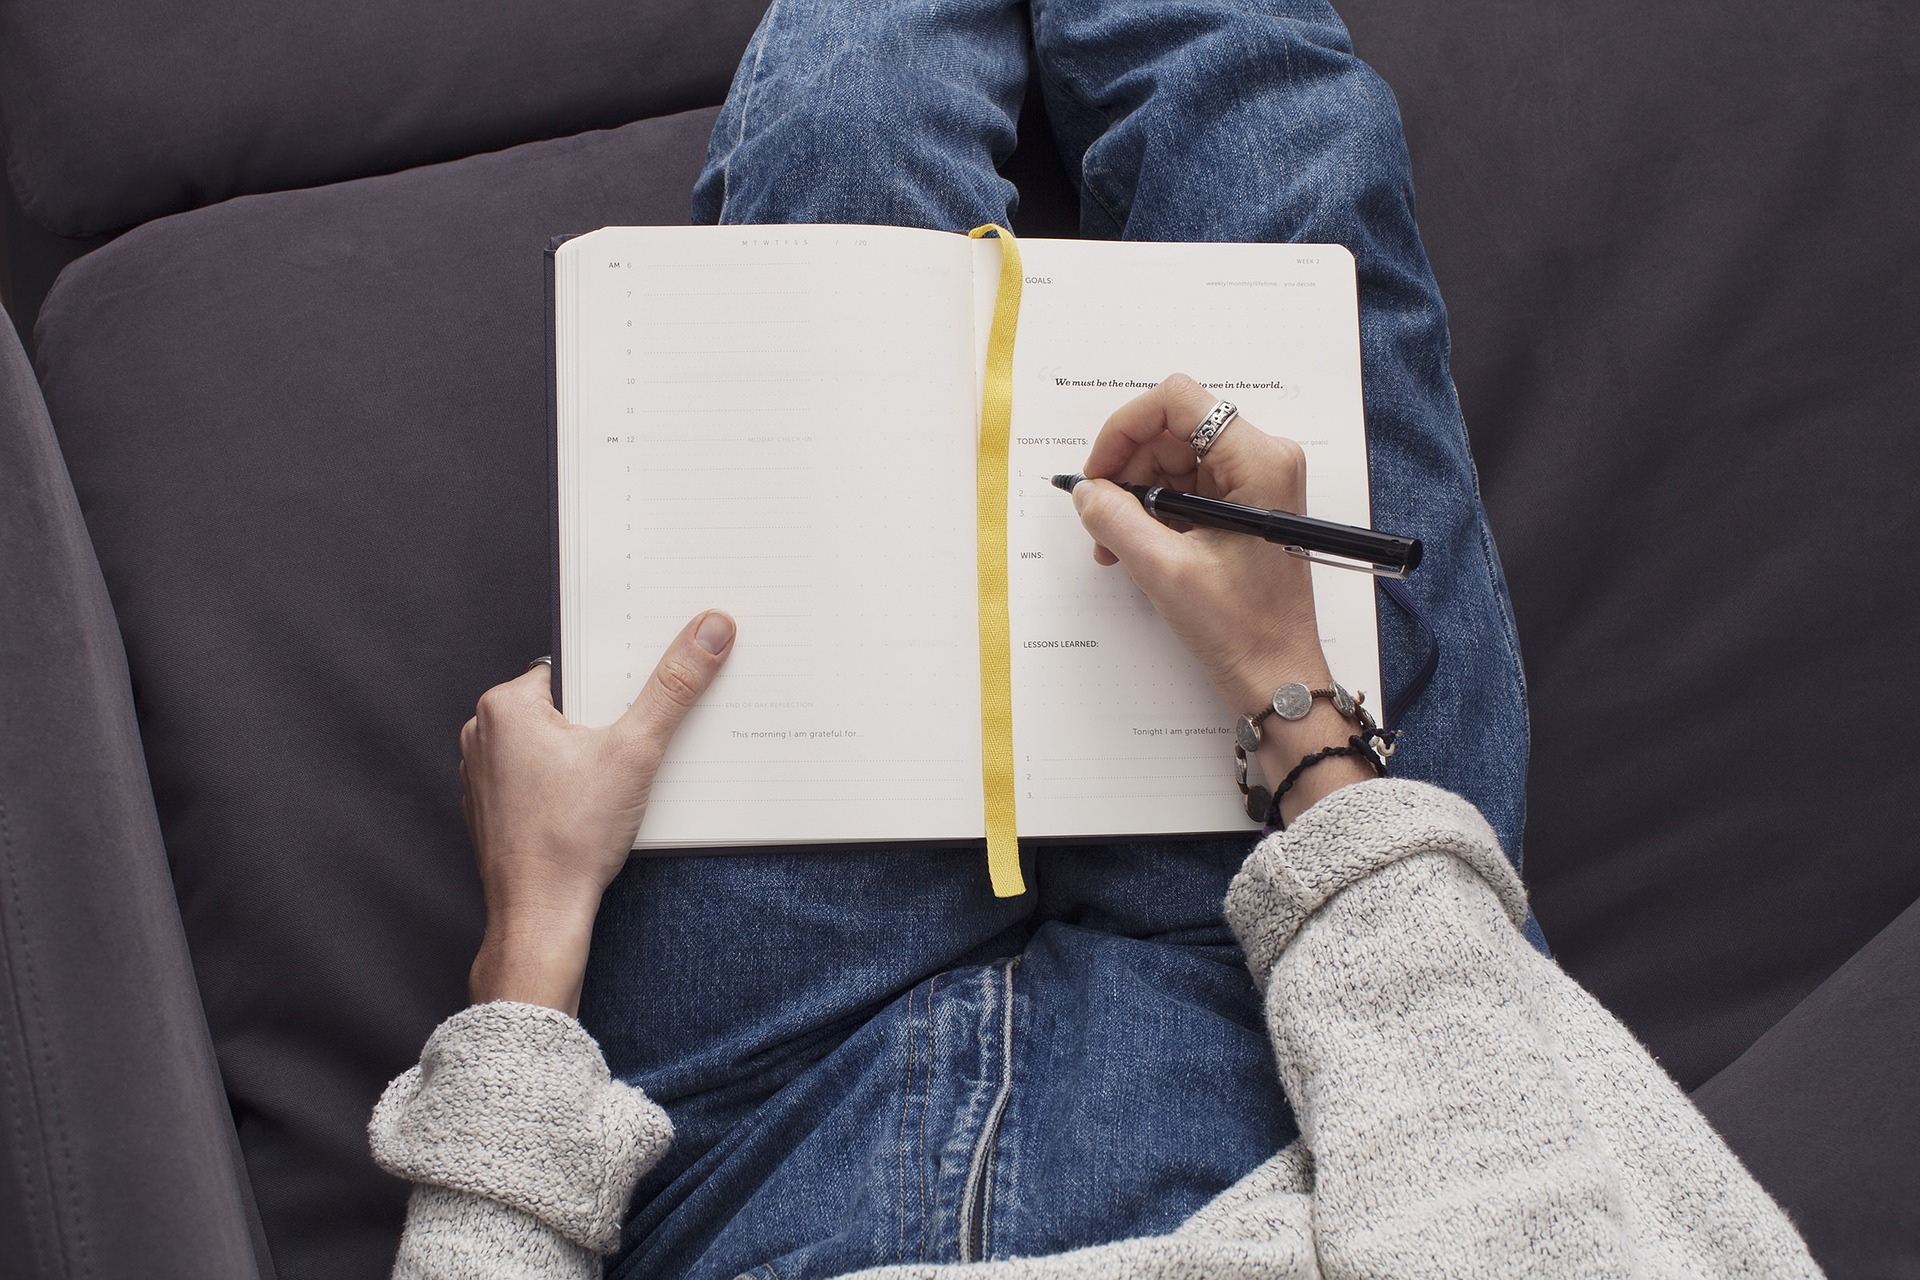 Woman wearing jeans and sitting on couch to write in her stop smoking journal